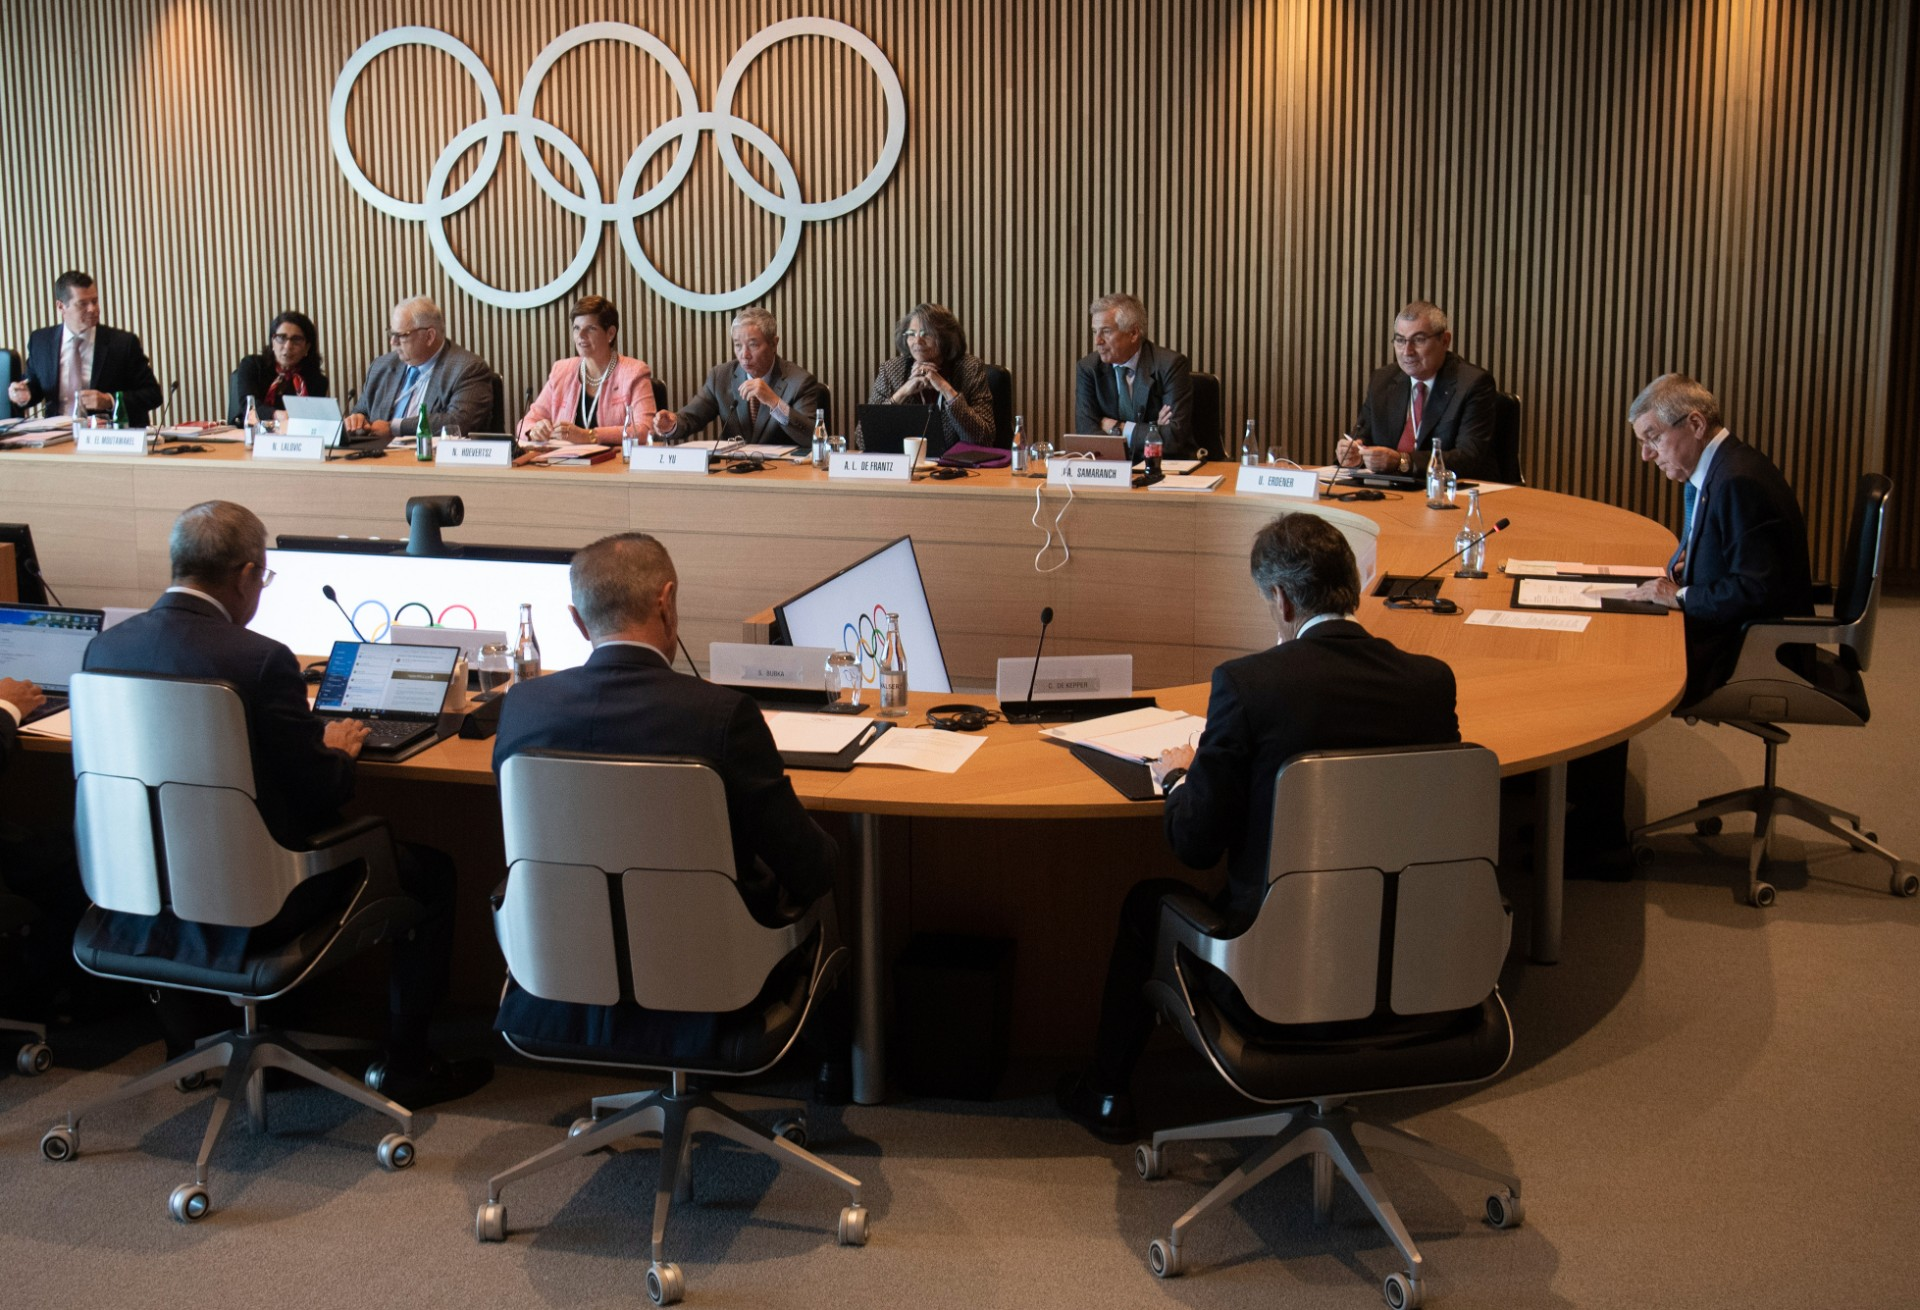 International Olympic Committee (IOC) at the Olympic House